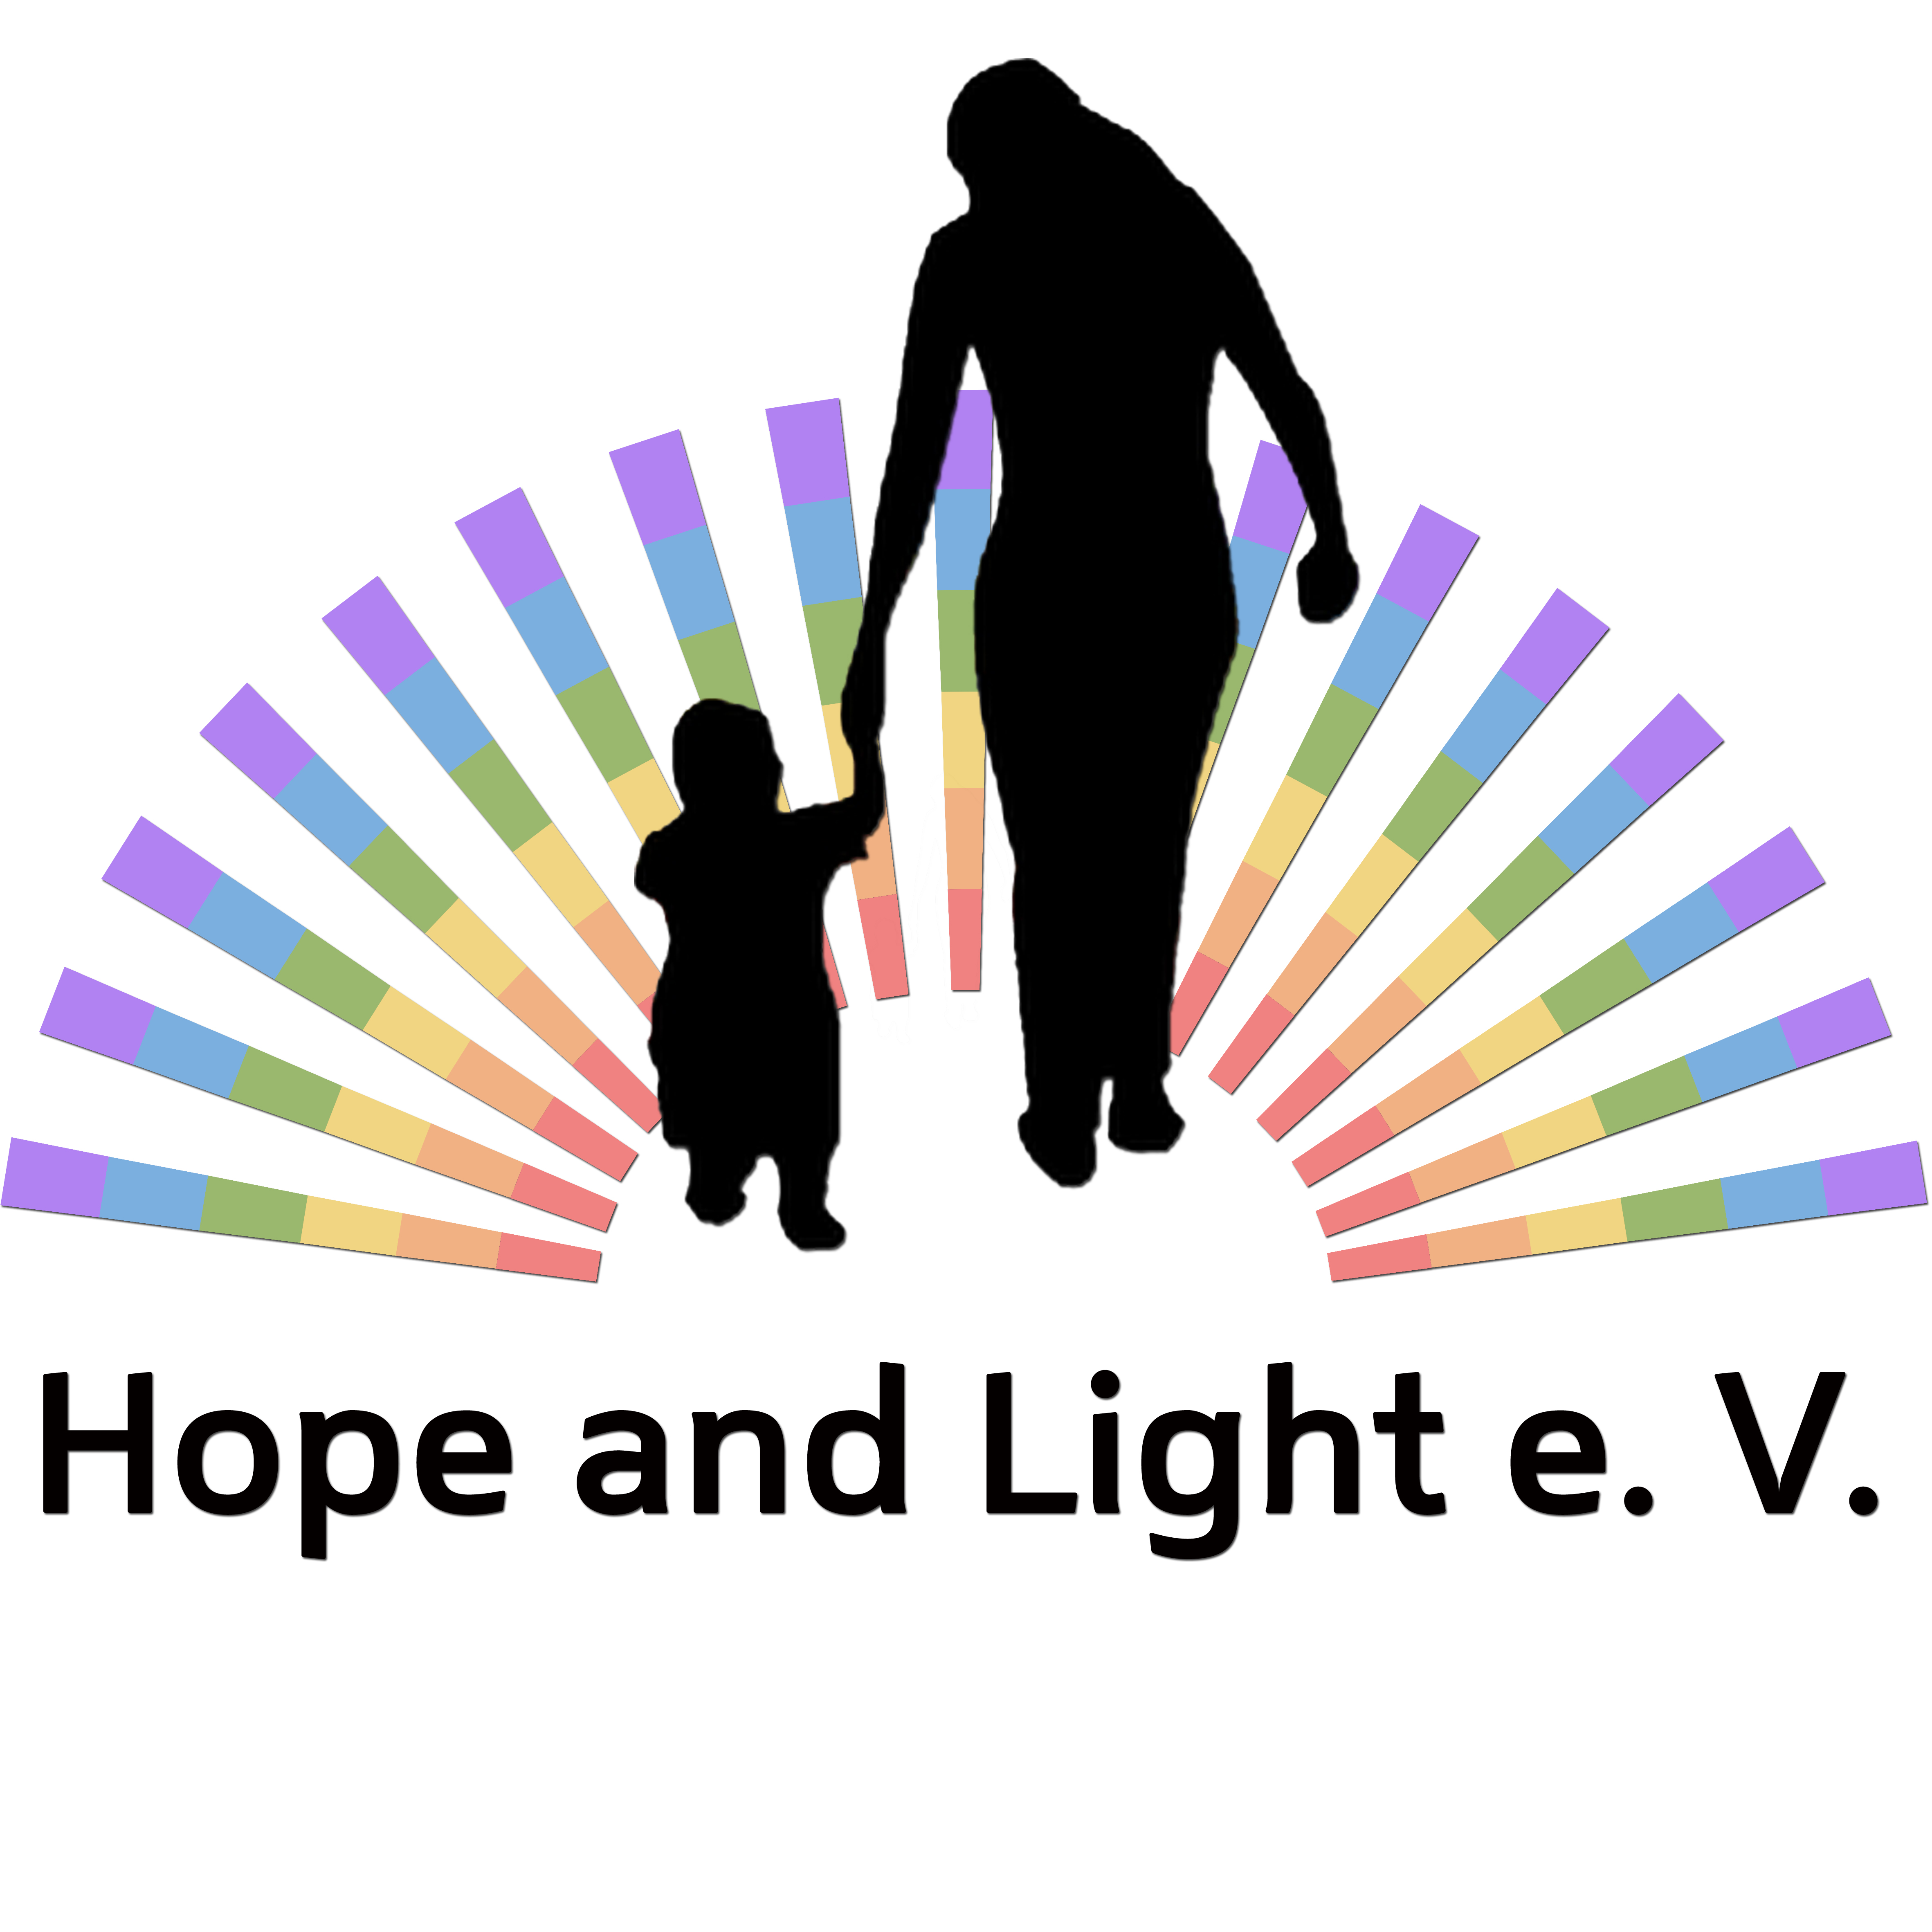 Hope and Light eV